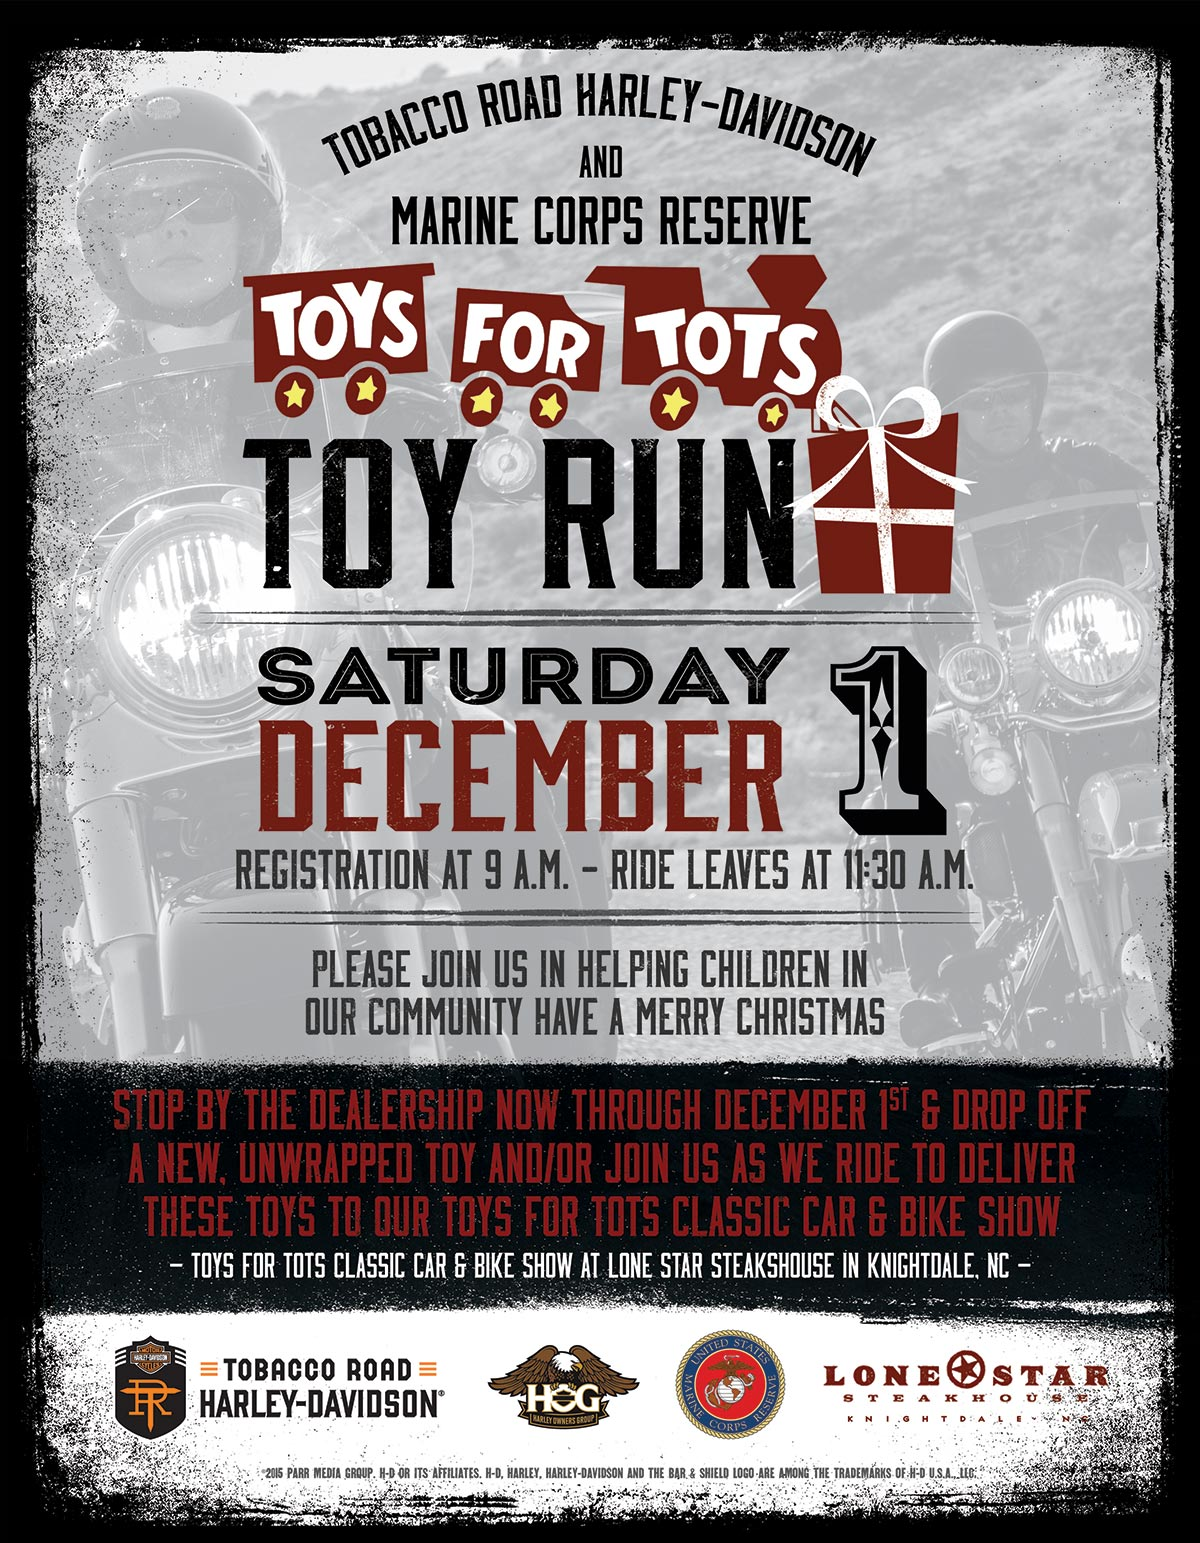 Toys For Tots Flyers 2012 : Toys for tots ride tobacco road harley davidson events